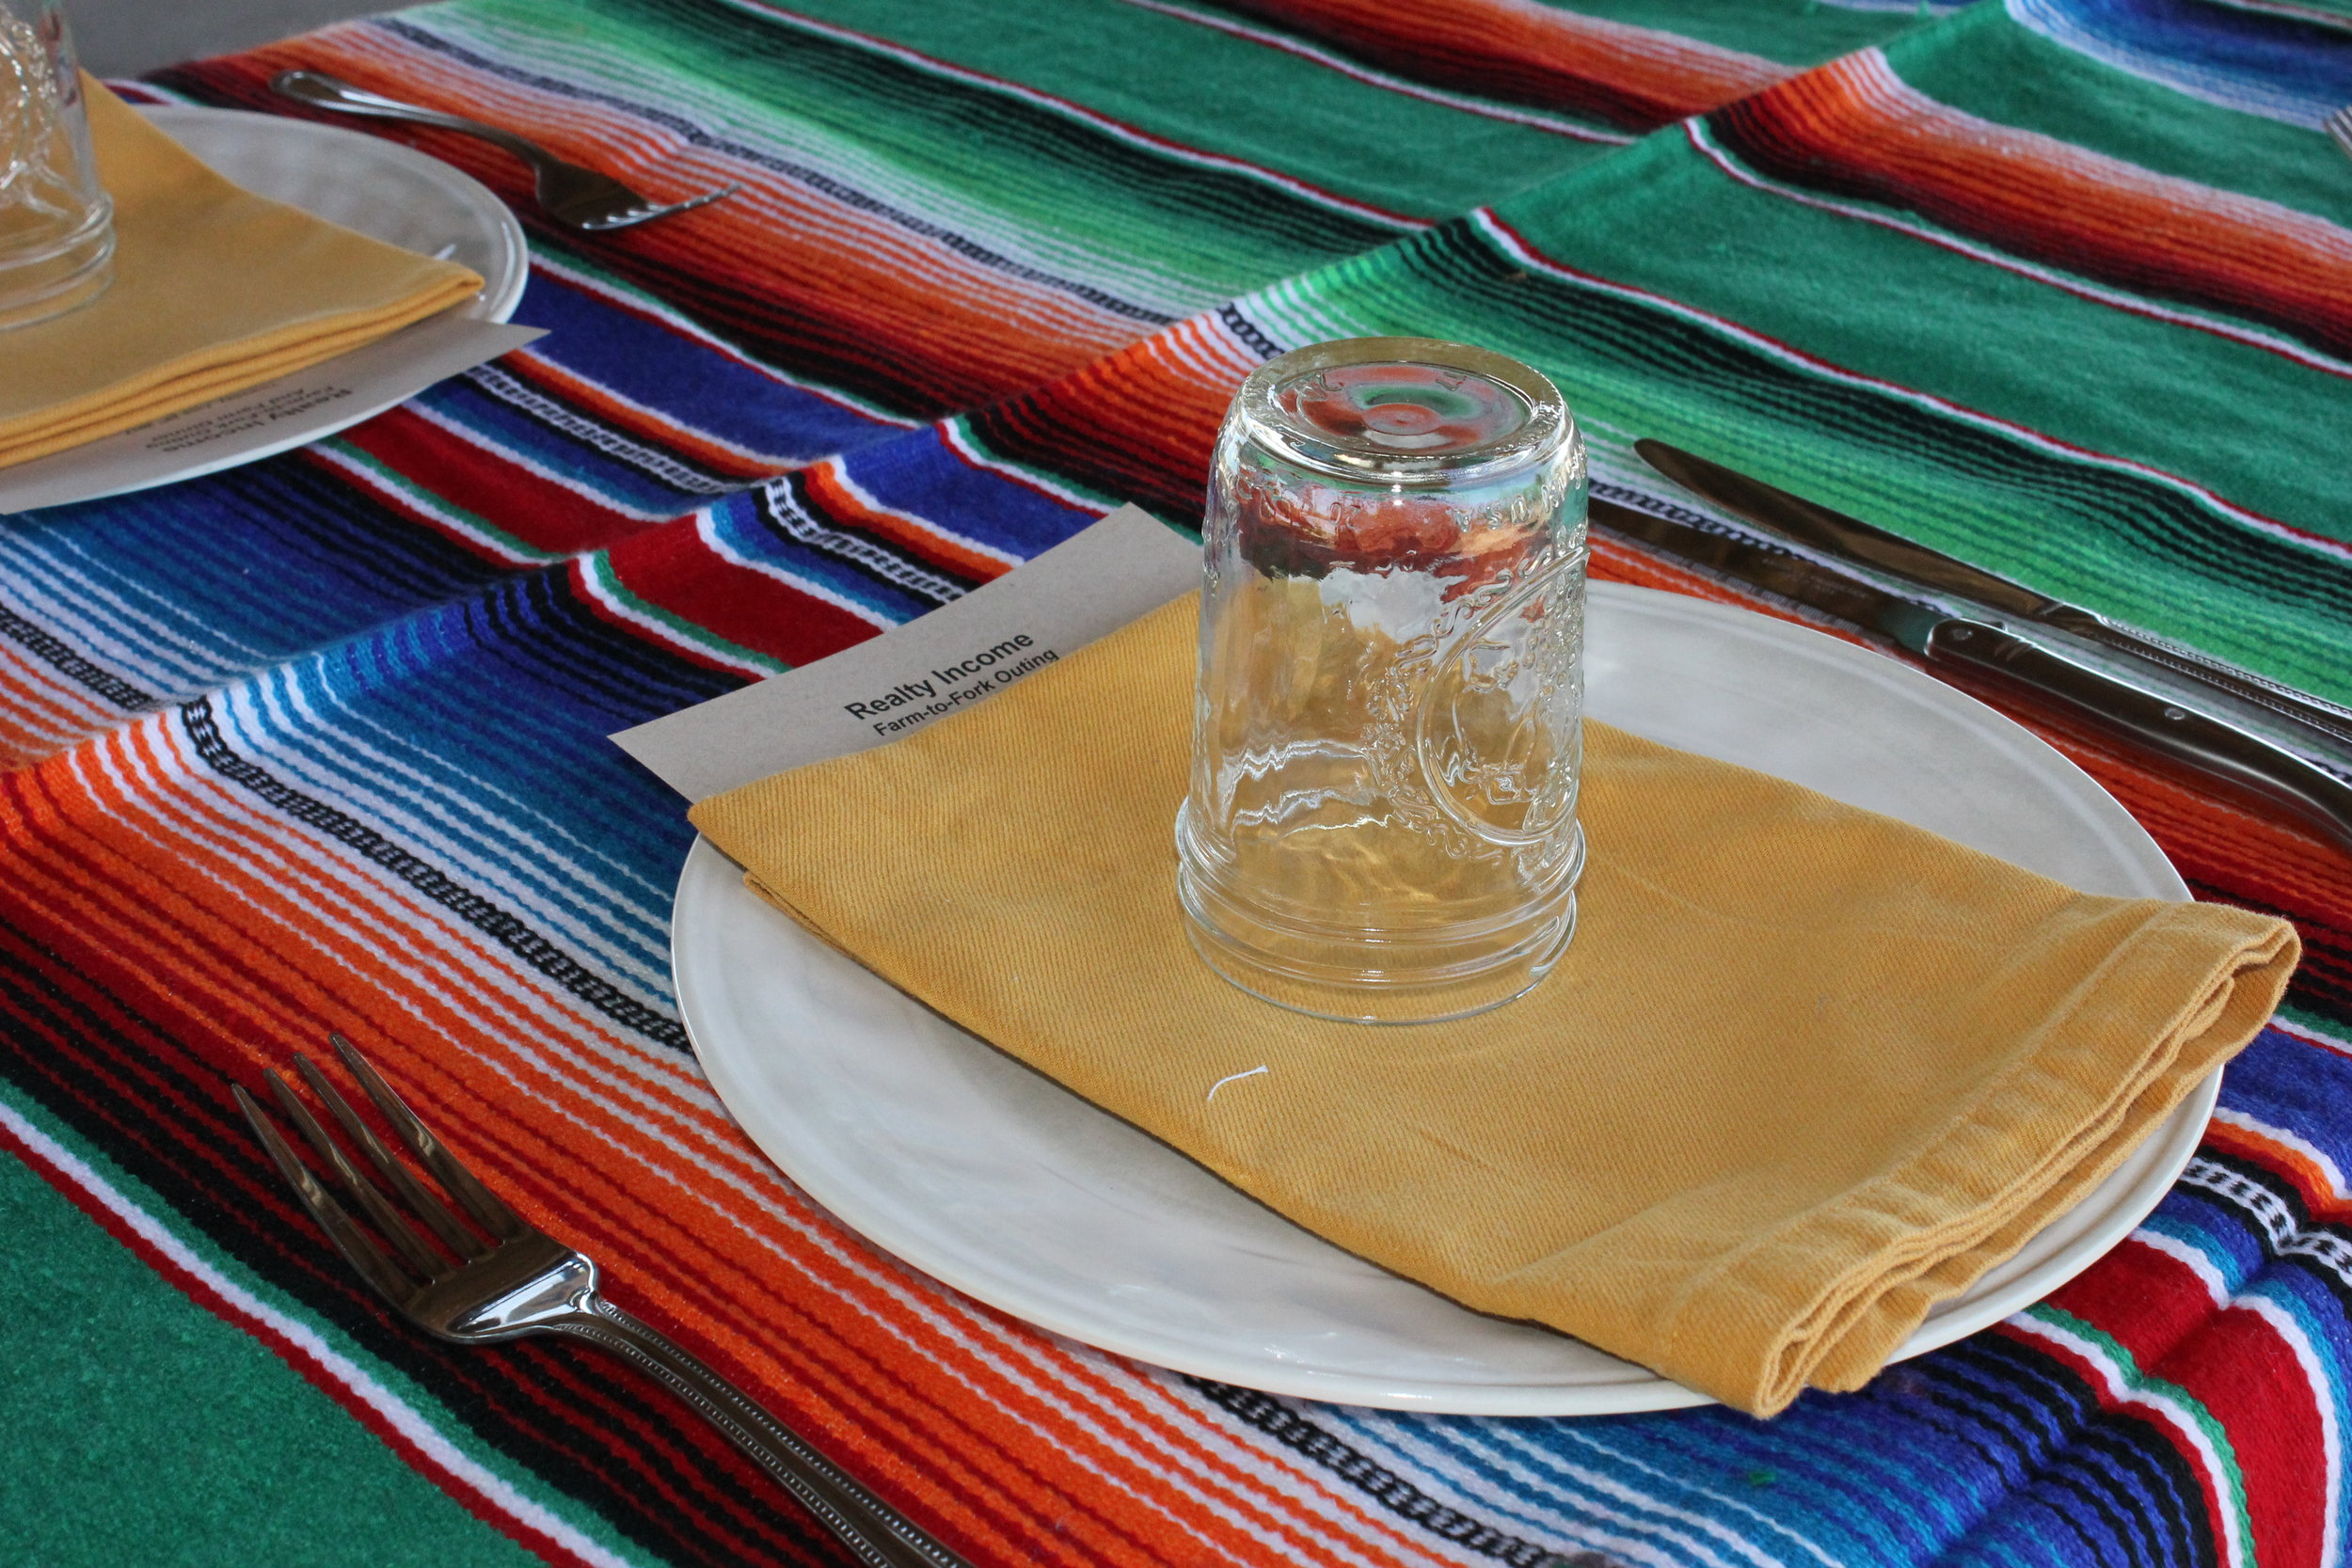 Wild Willow Lunch Table Setting.JPG